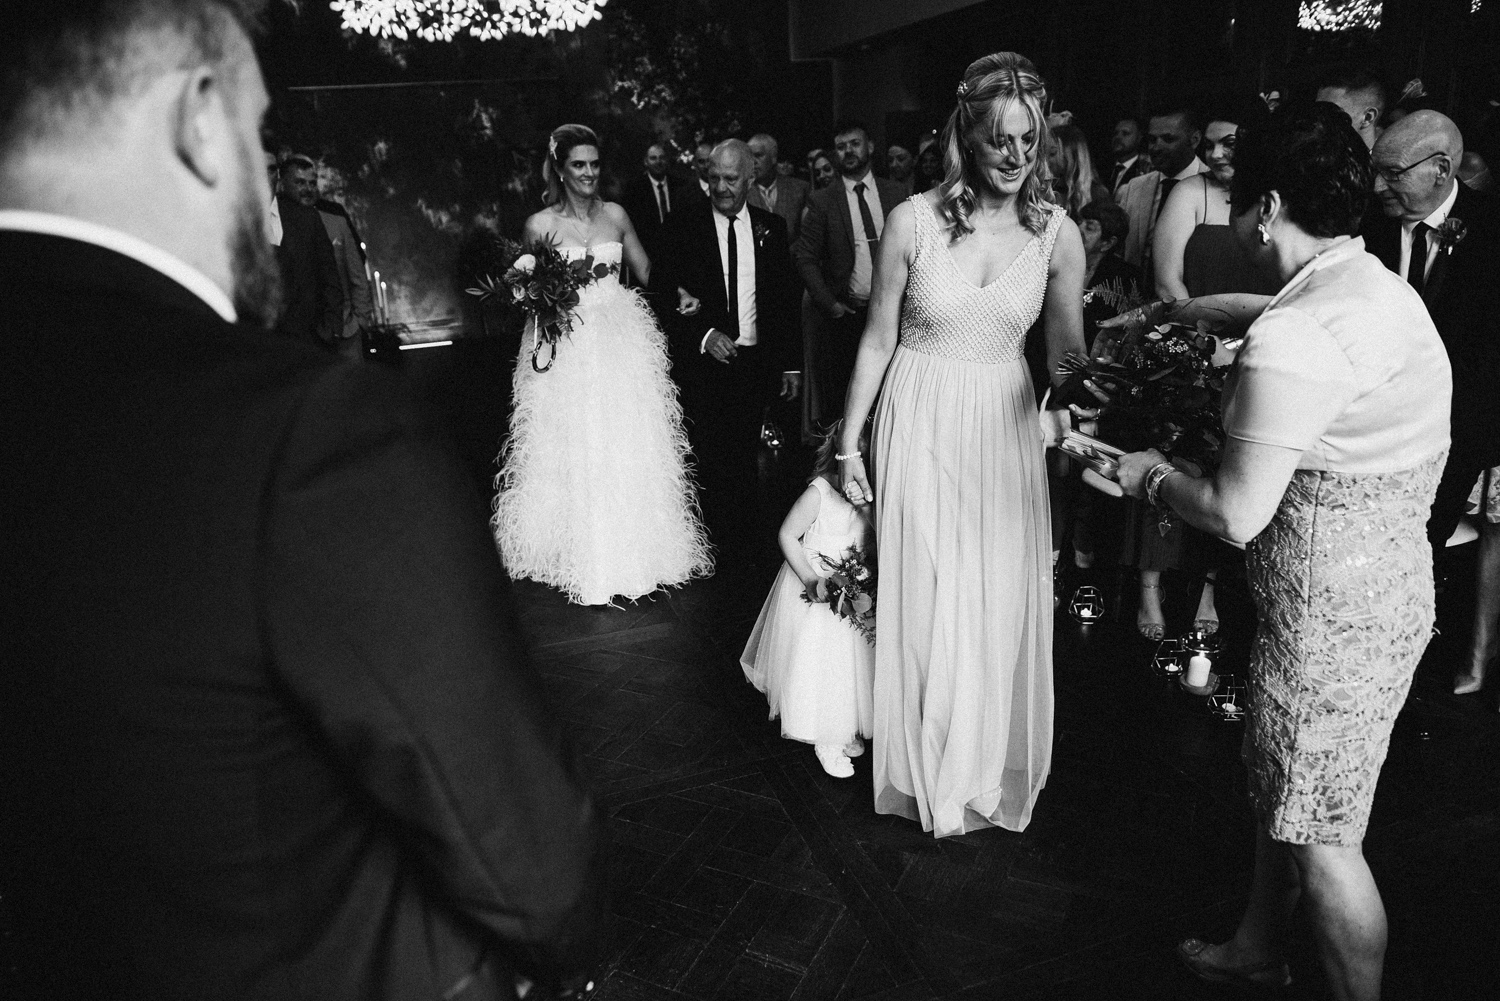 Bride making her way down the aisle